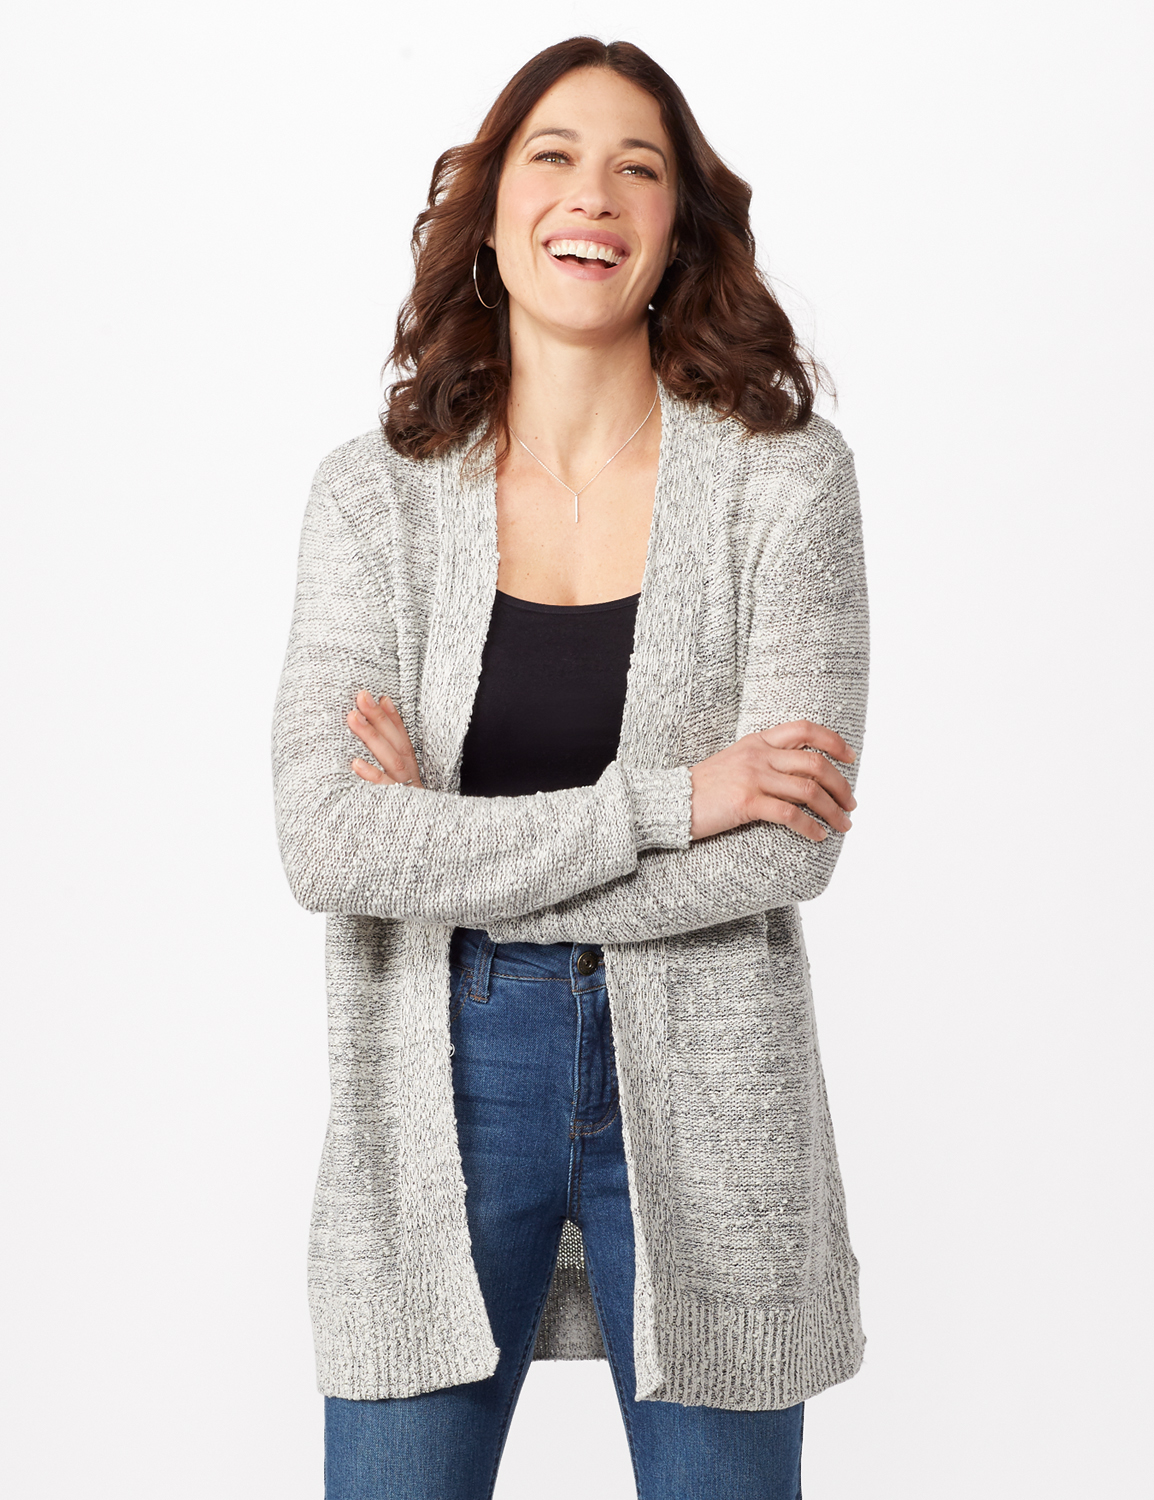 Textured Cardigan with Pointelle Detail - Misses - Ivory/black - Front